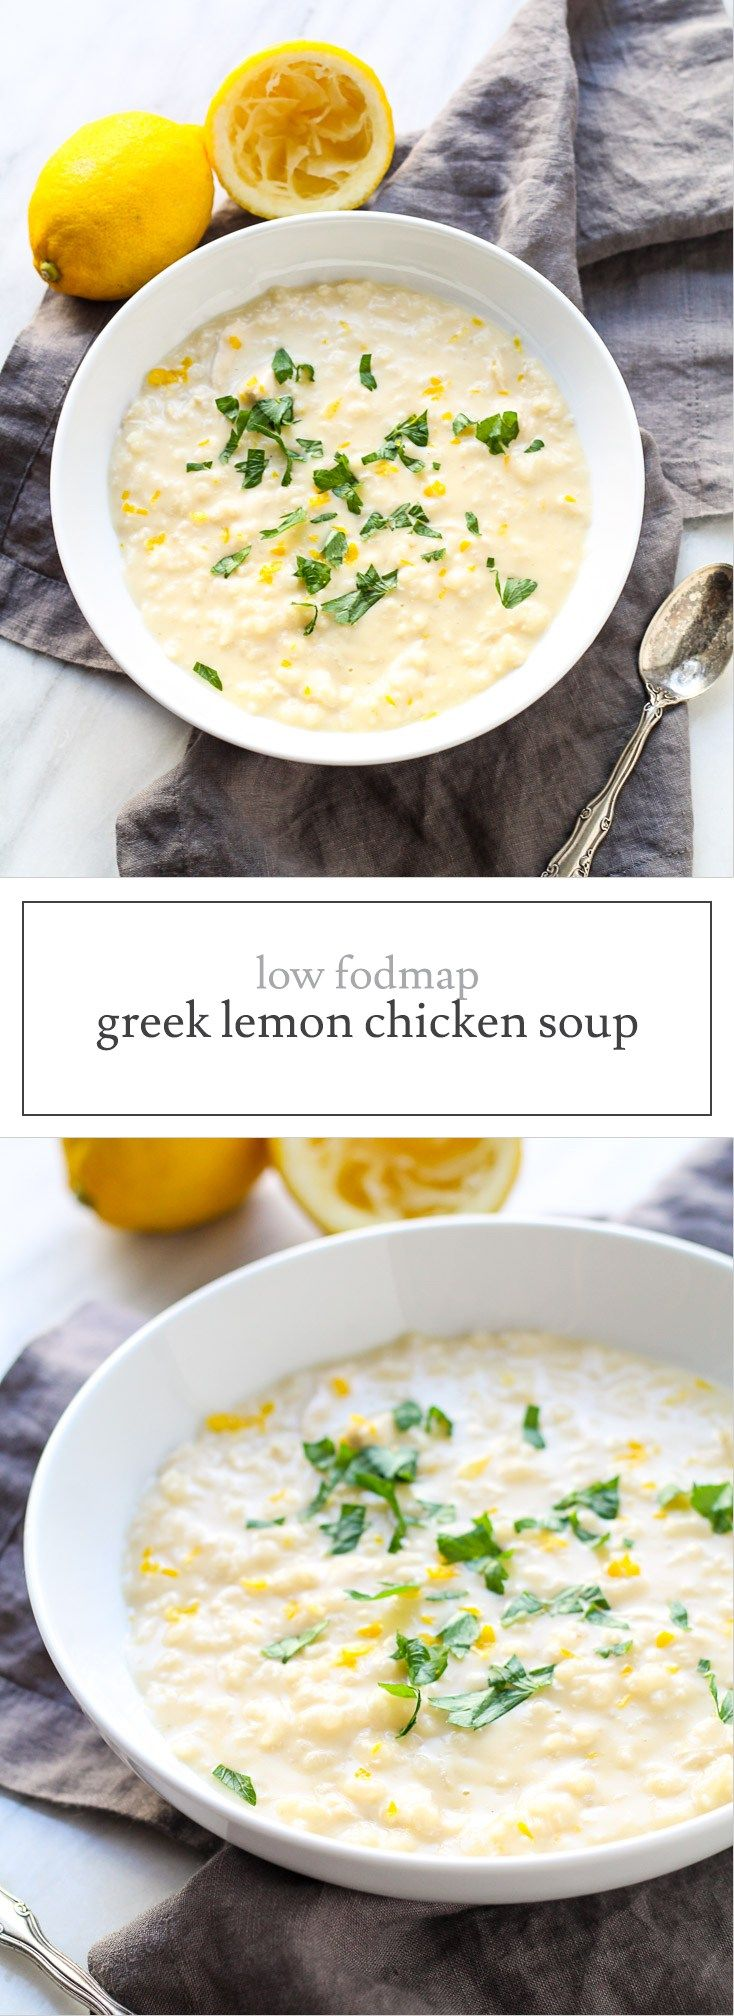 Creamy, comforting and oh-so-good, this Low FODMAP Greek Lemon Chicken Soup is a delicious way to warm up! It's also gluten free and dairy free. | funwithoutfodmaps.com | #lowfodmap #dairyfree #soup